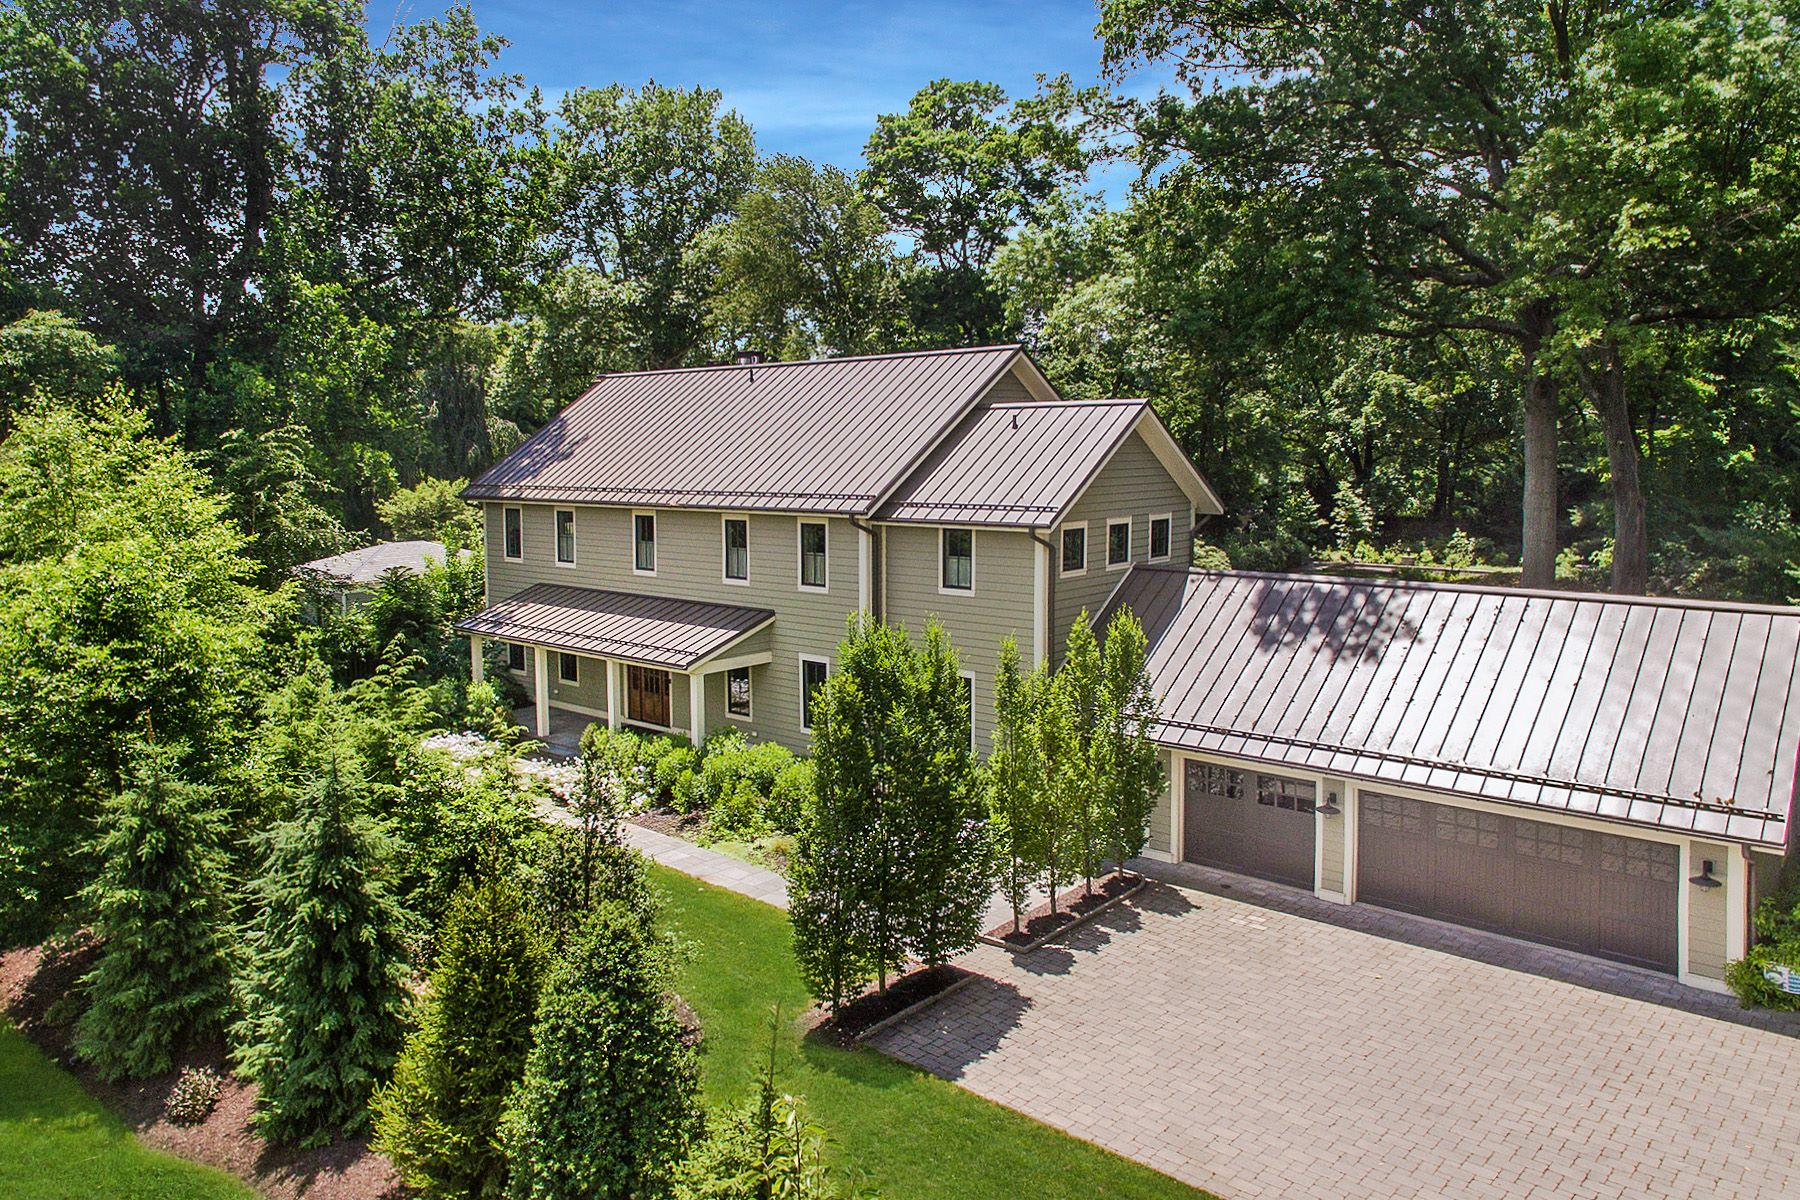 Single Family Homes for Sale at Luxuriously Eco-friendly 443 Maple Lane, Sewickley, Pennsylvania 15143 United States